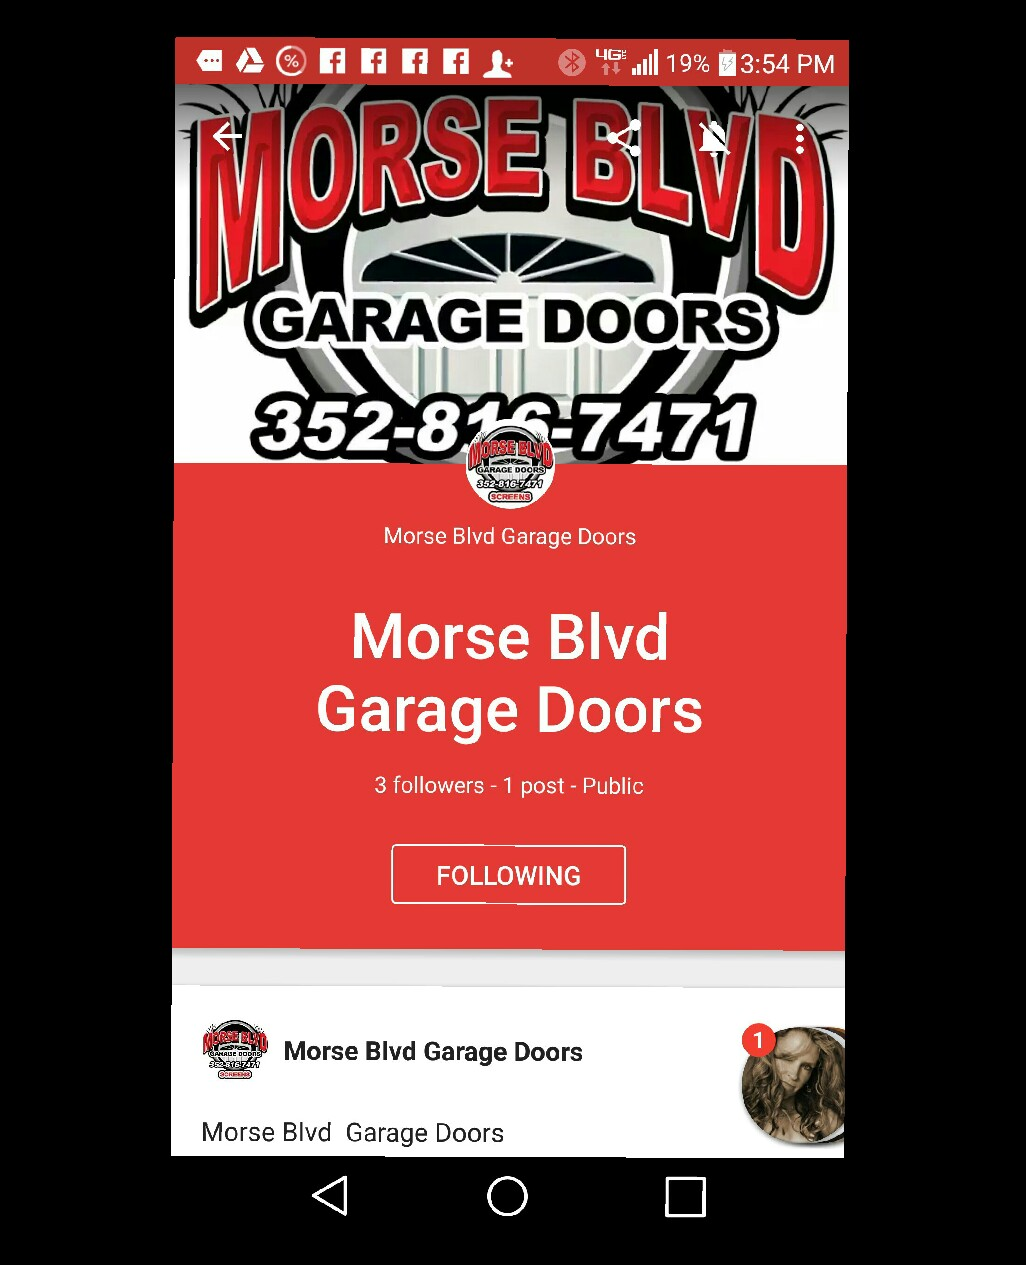 Morse blvd garage doors 17145 ne 38th lane rd silver springs fl logo servicesproducts garage door company garage door service garage door spring replacement garage door spring replacement cost rubansaba